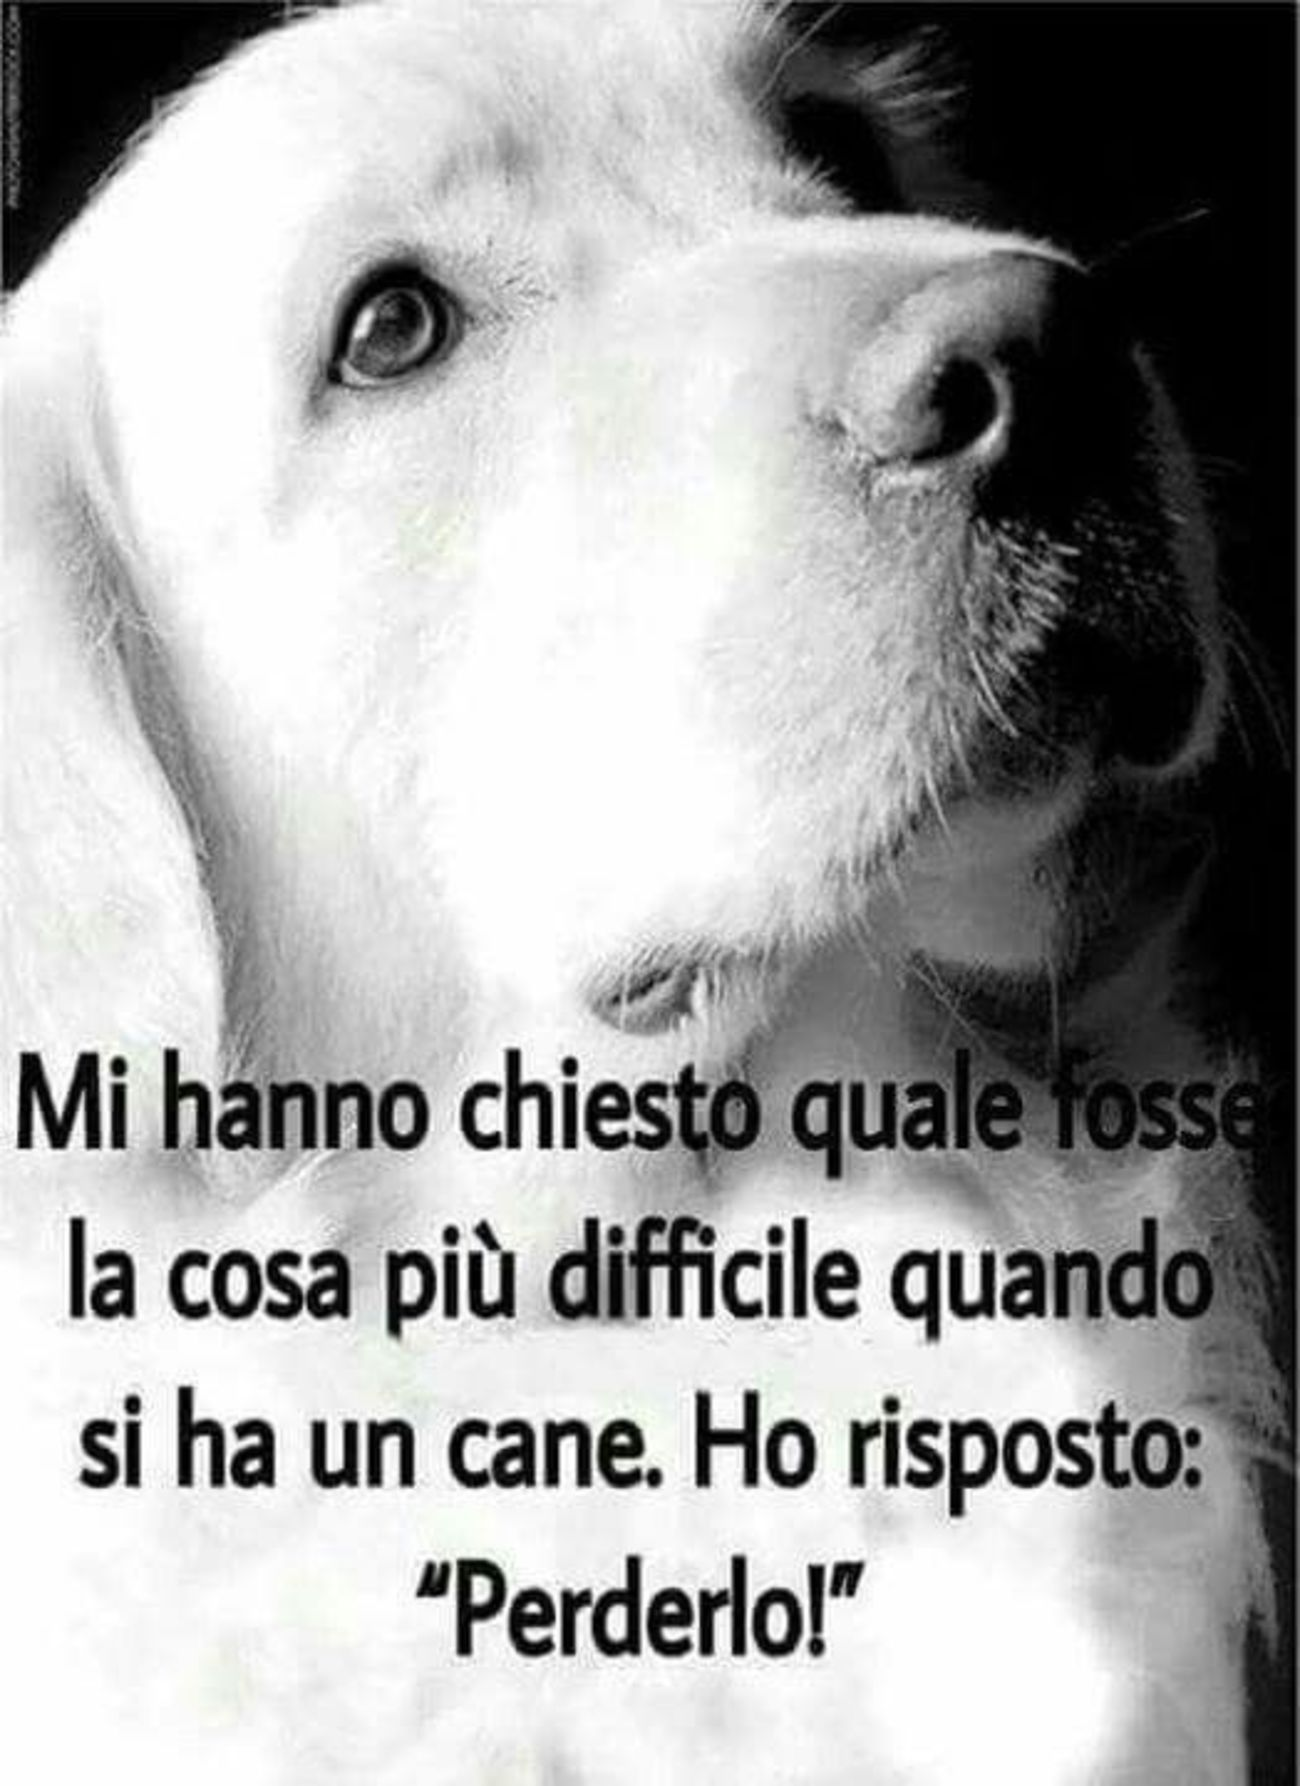 Frasi Per Cani.Frasi Amore Per I Cani 2 Dogs Dog Quotes Dog Lovers